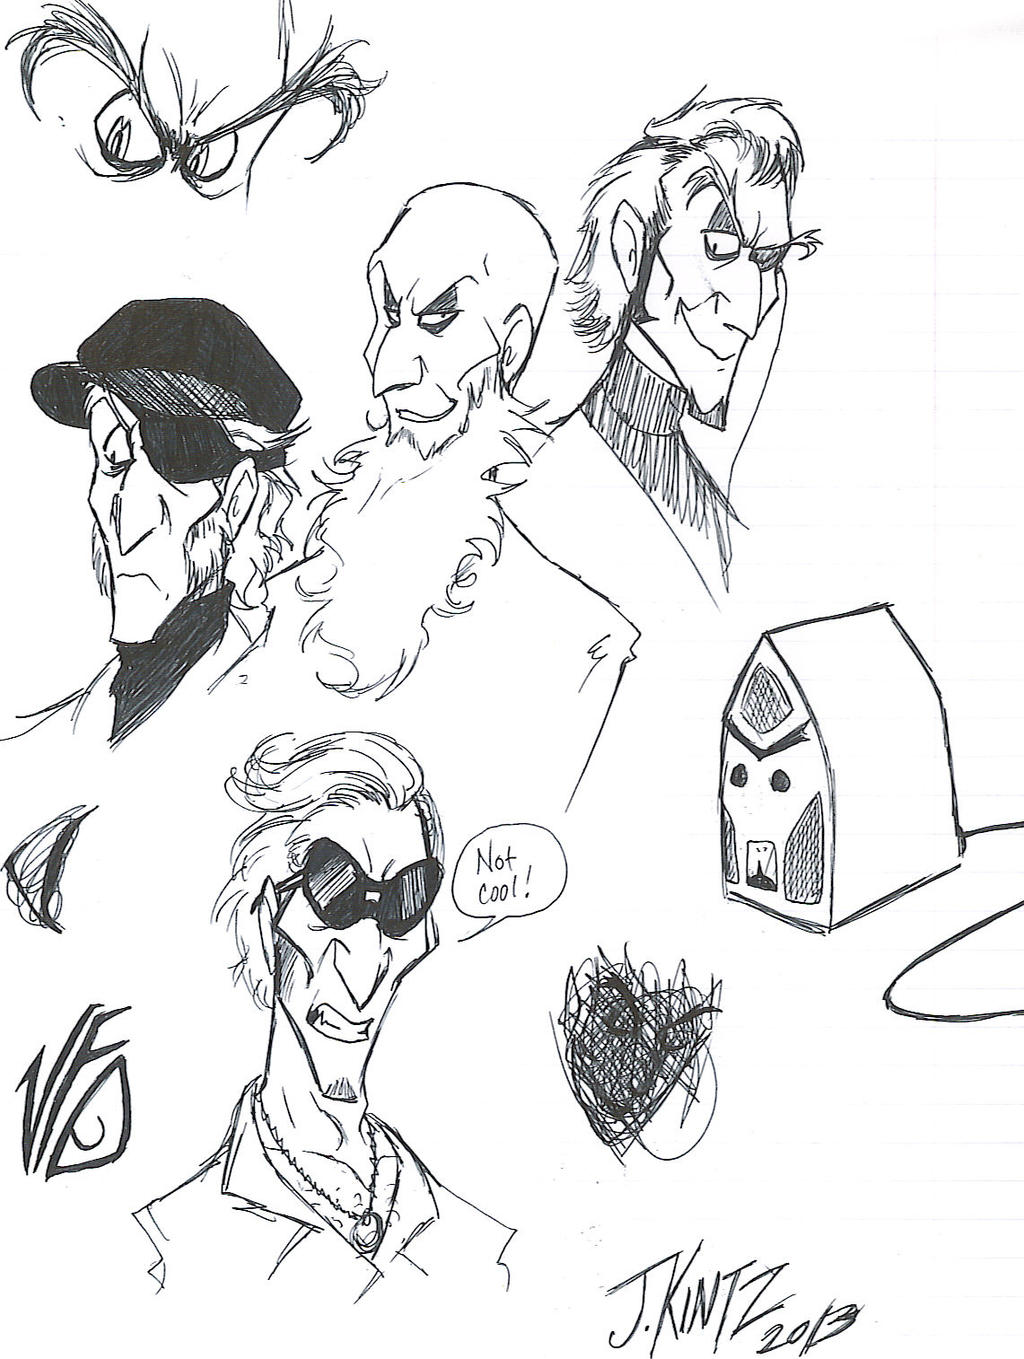 Count Olaf Sketchdump by Rinkusu001 on DeviantArt